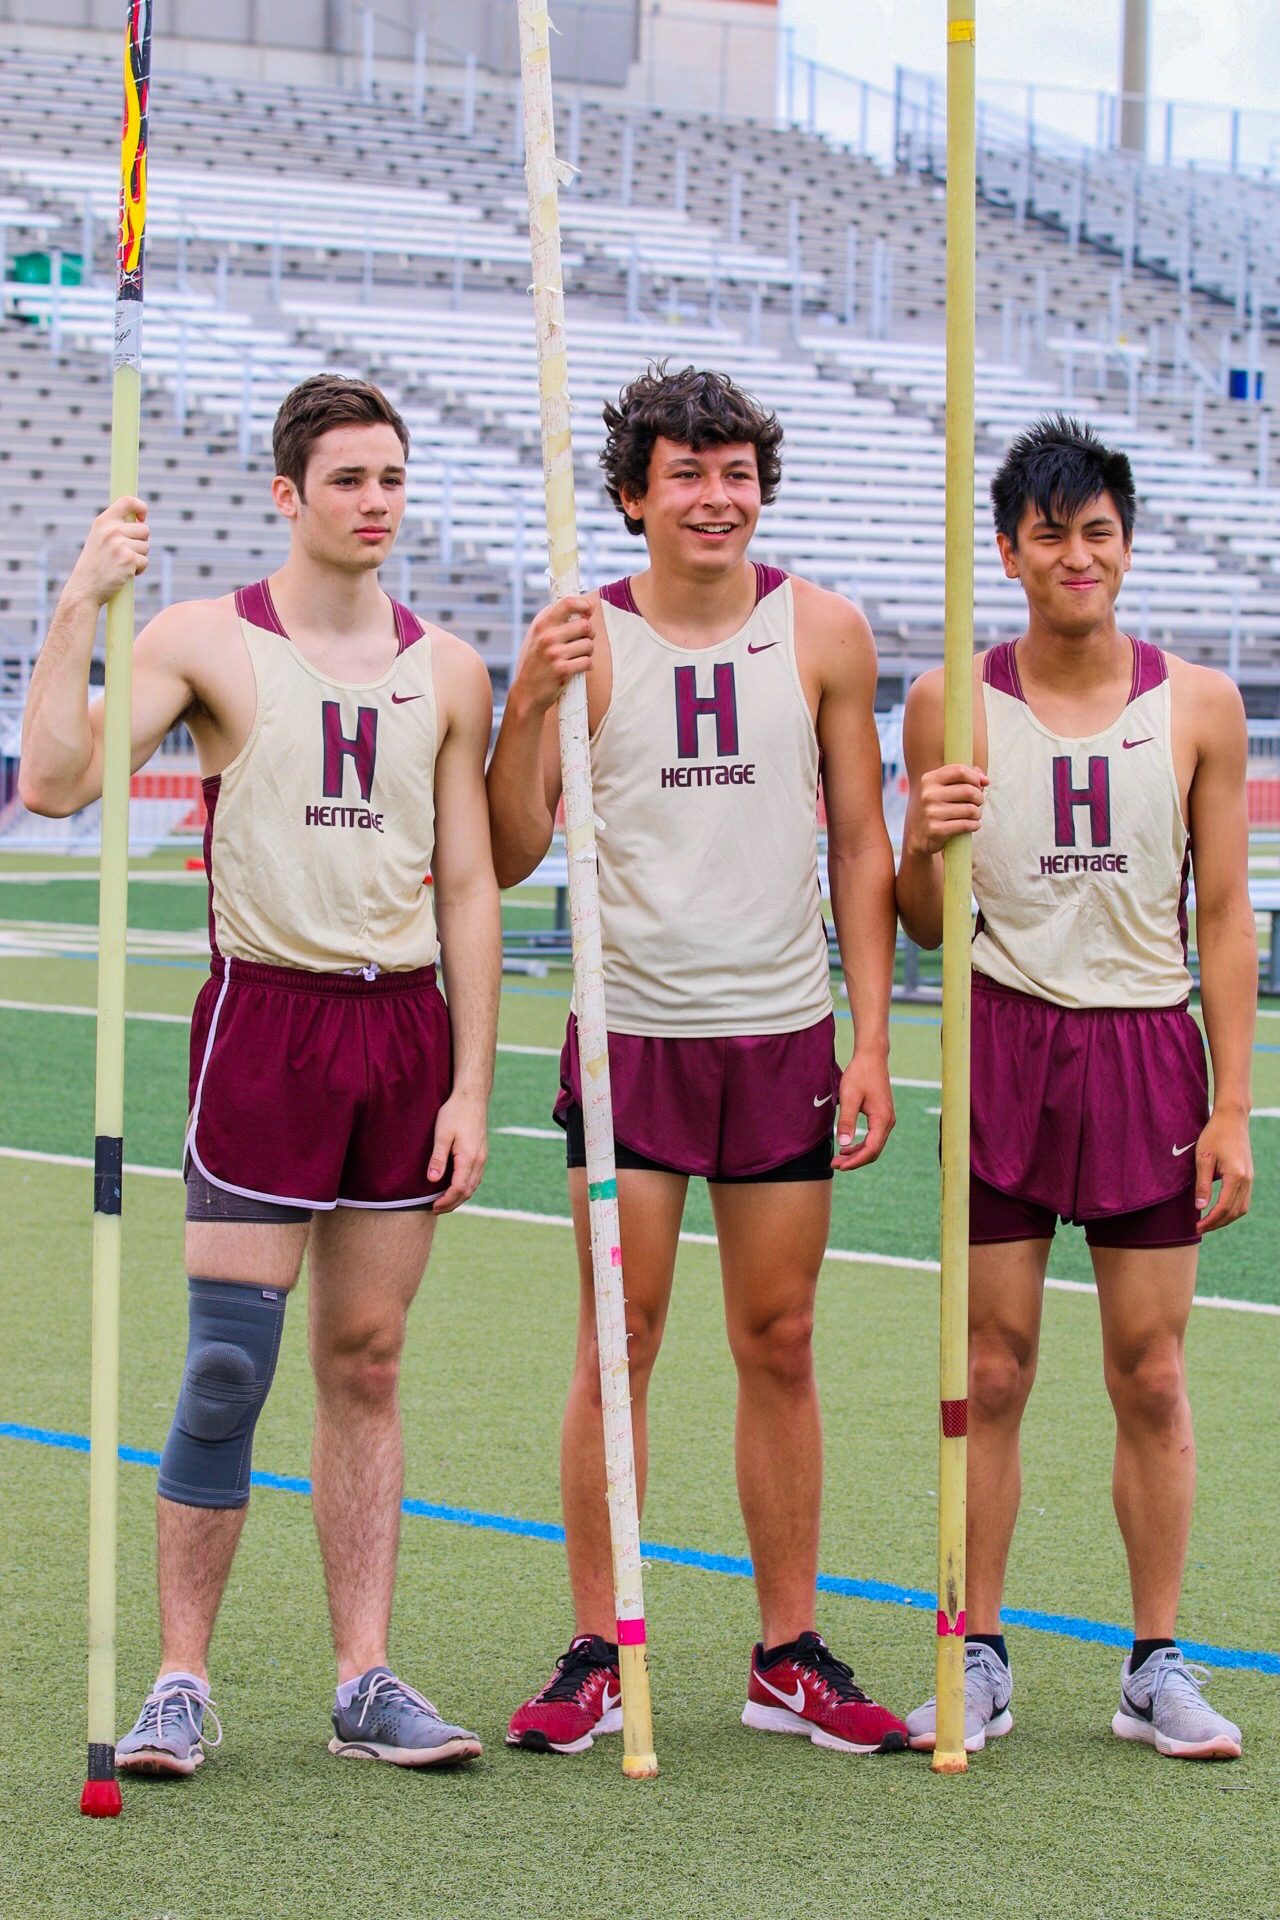 Heritage Track DOMINATES Day 1 of District